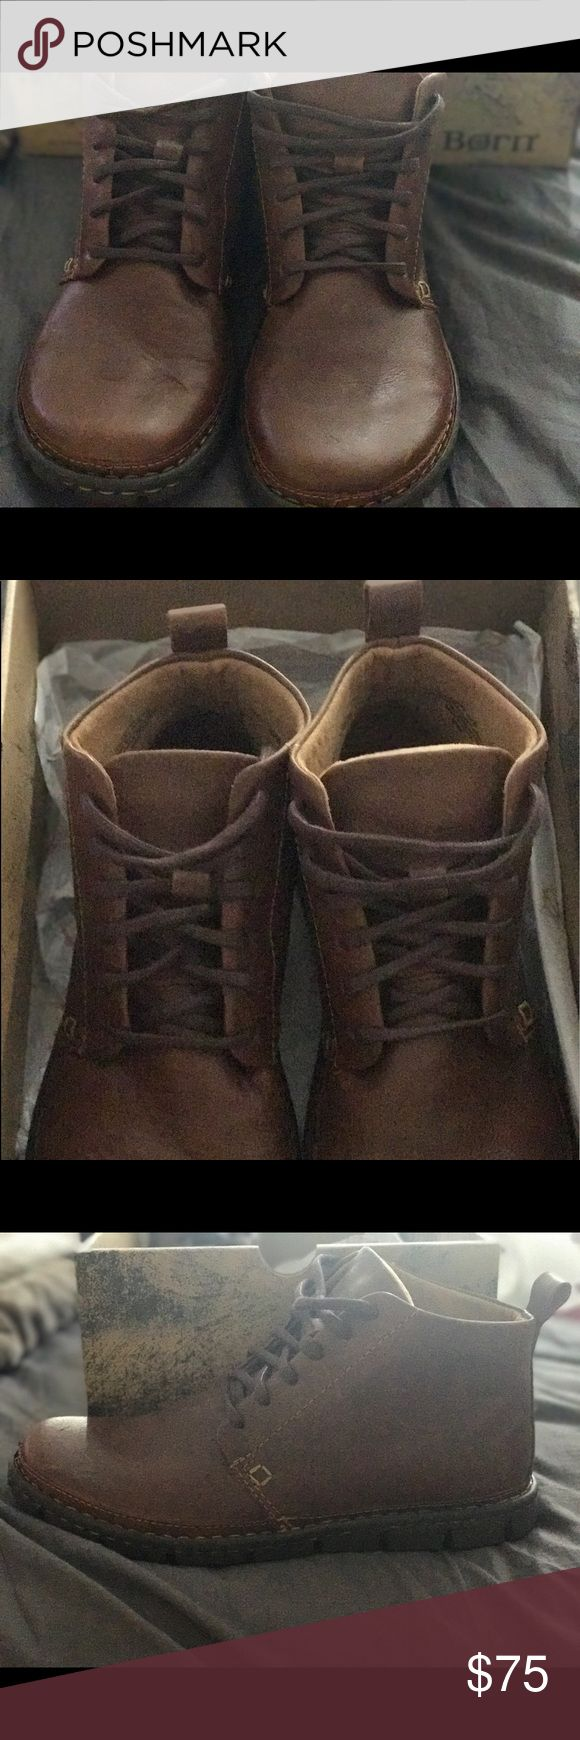 BRAND NEW Leather Born Boots Dark Brown Harrison M9431 Chestnut Size Men 8 Woman 9.5 BRAND NEW in box Harrison original price $110 Born Shoes Ankle Boots & Booties